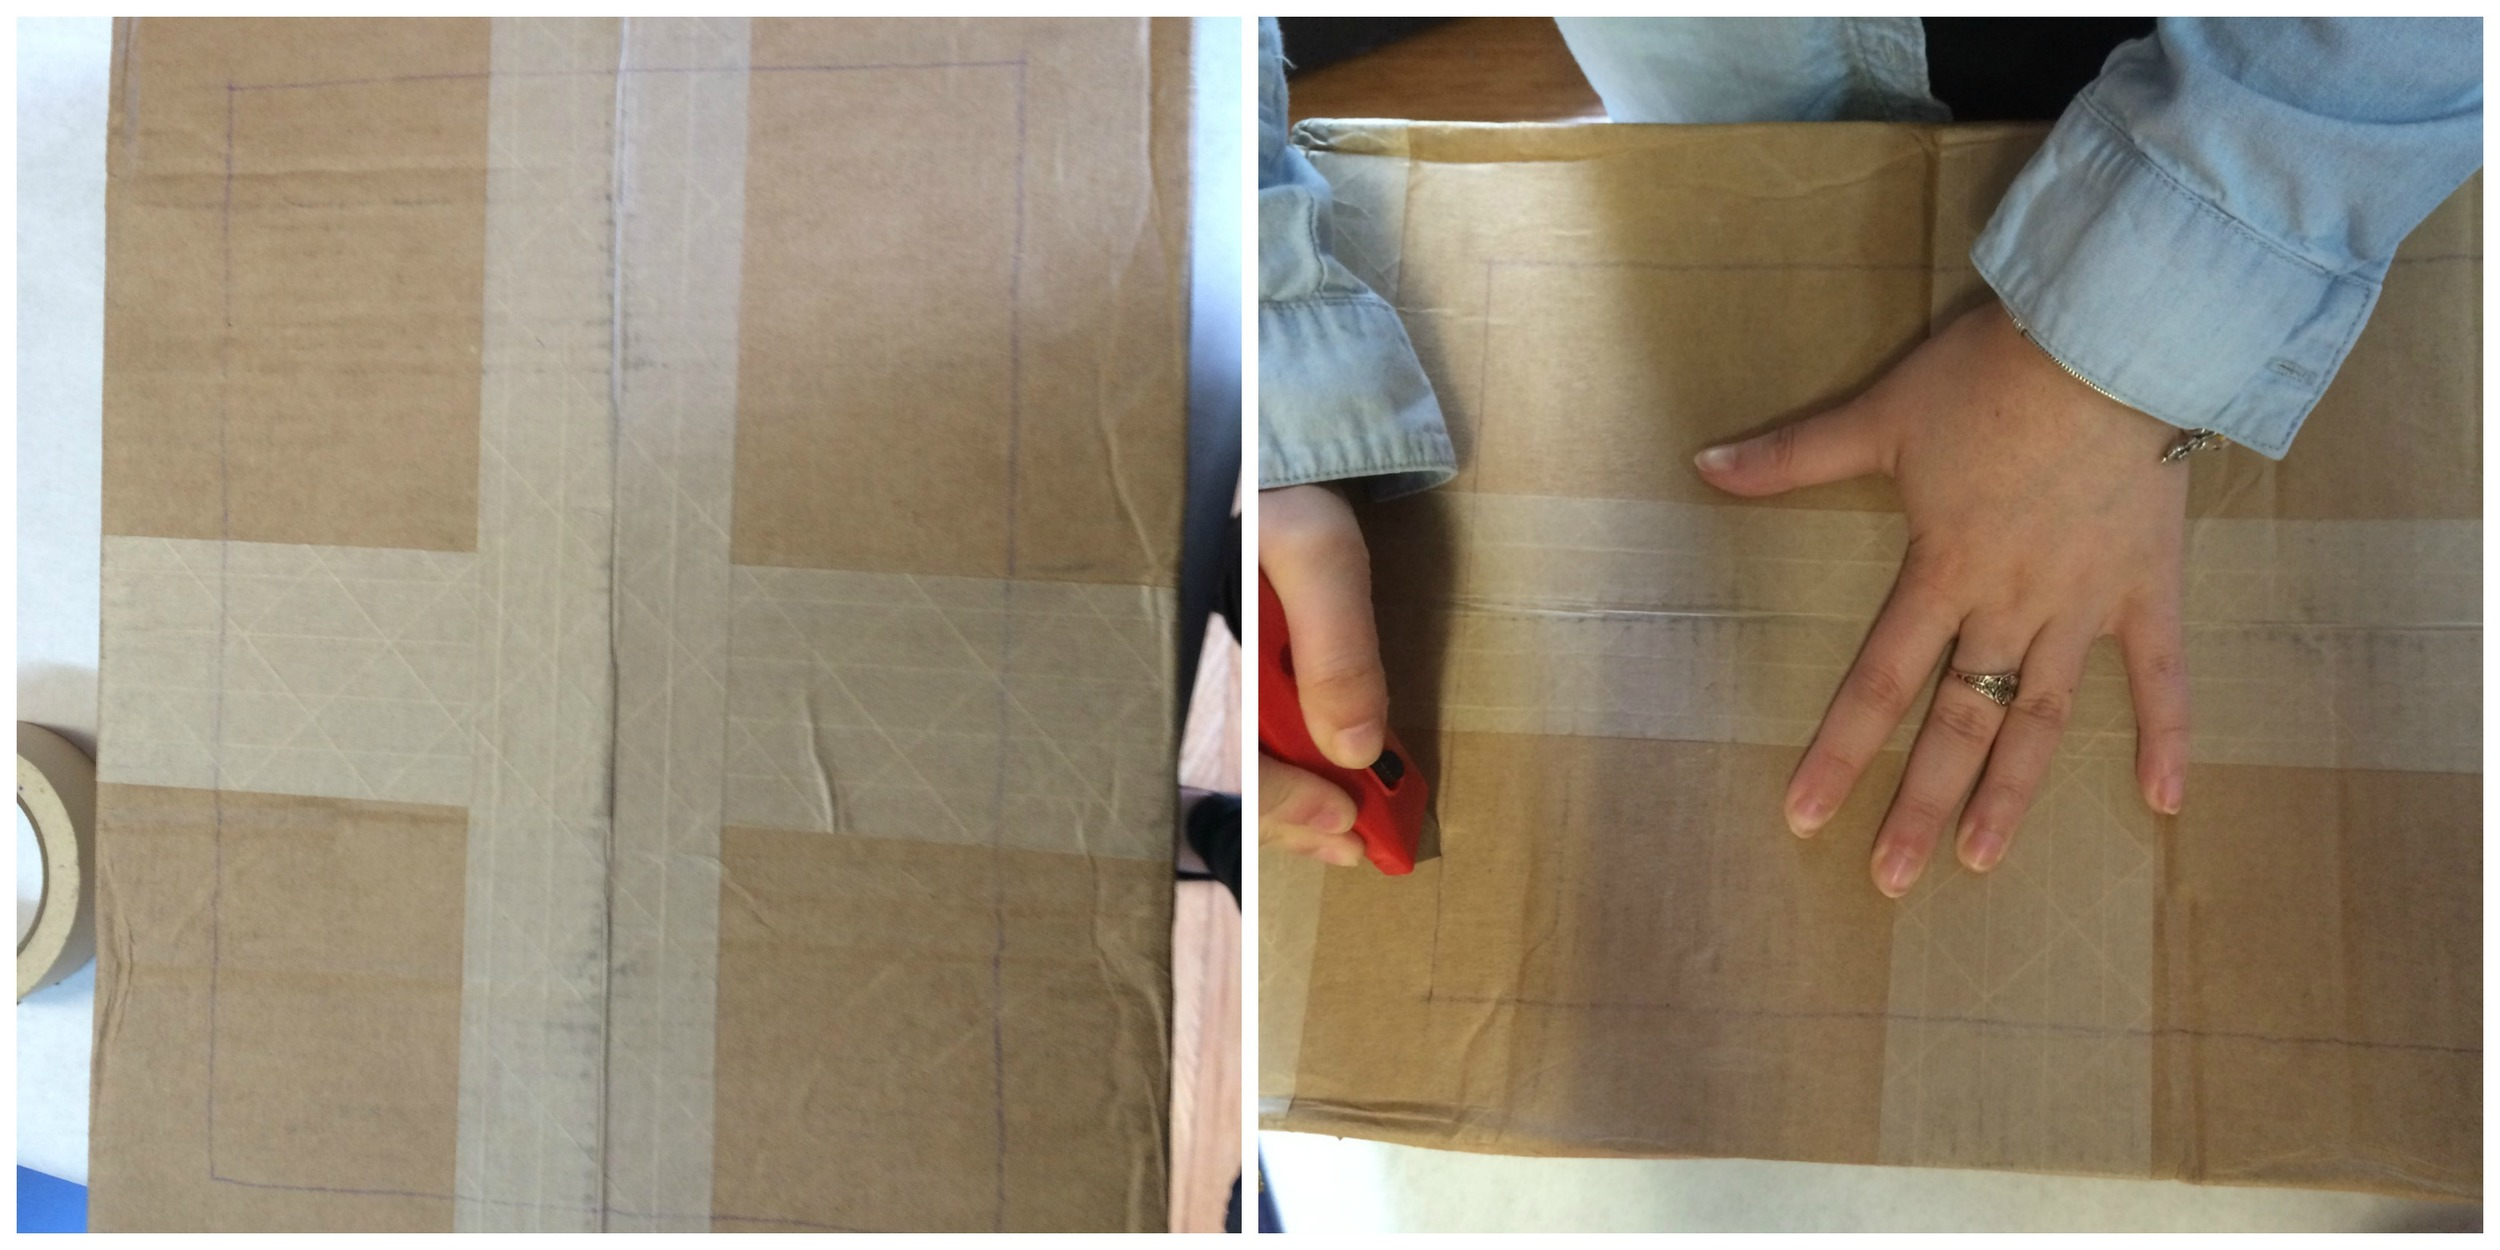 3. Next, make a large rectangular cut-out at the front of the box. This will make the stage itself visible so you can see the puppets!